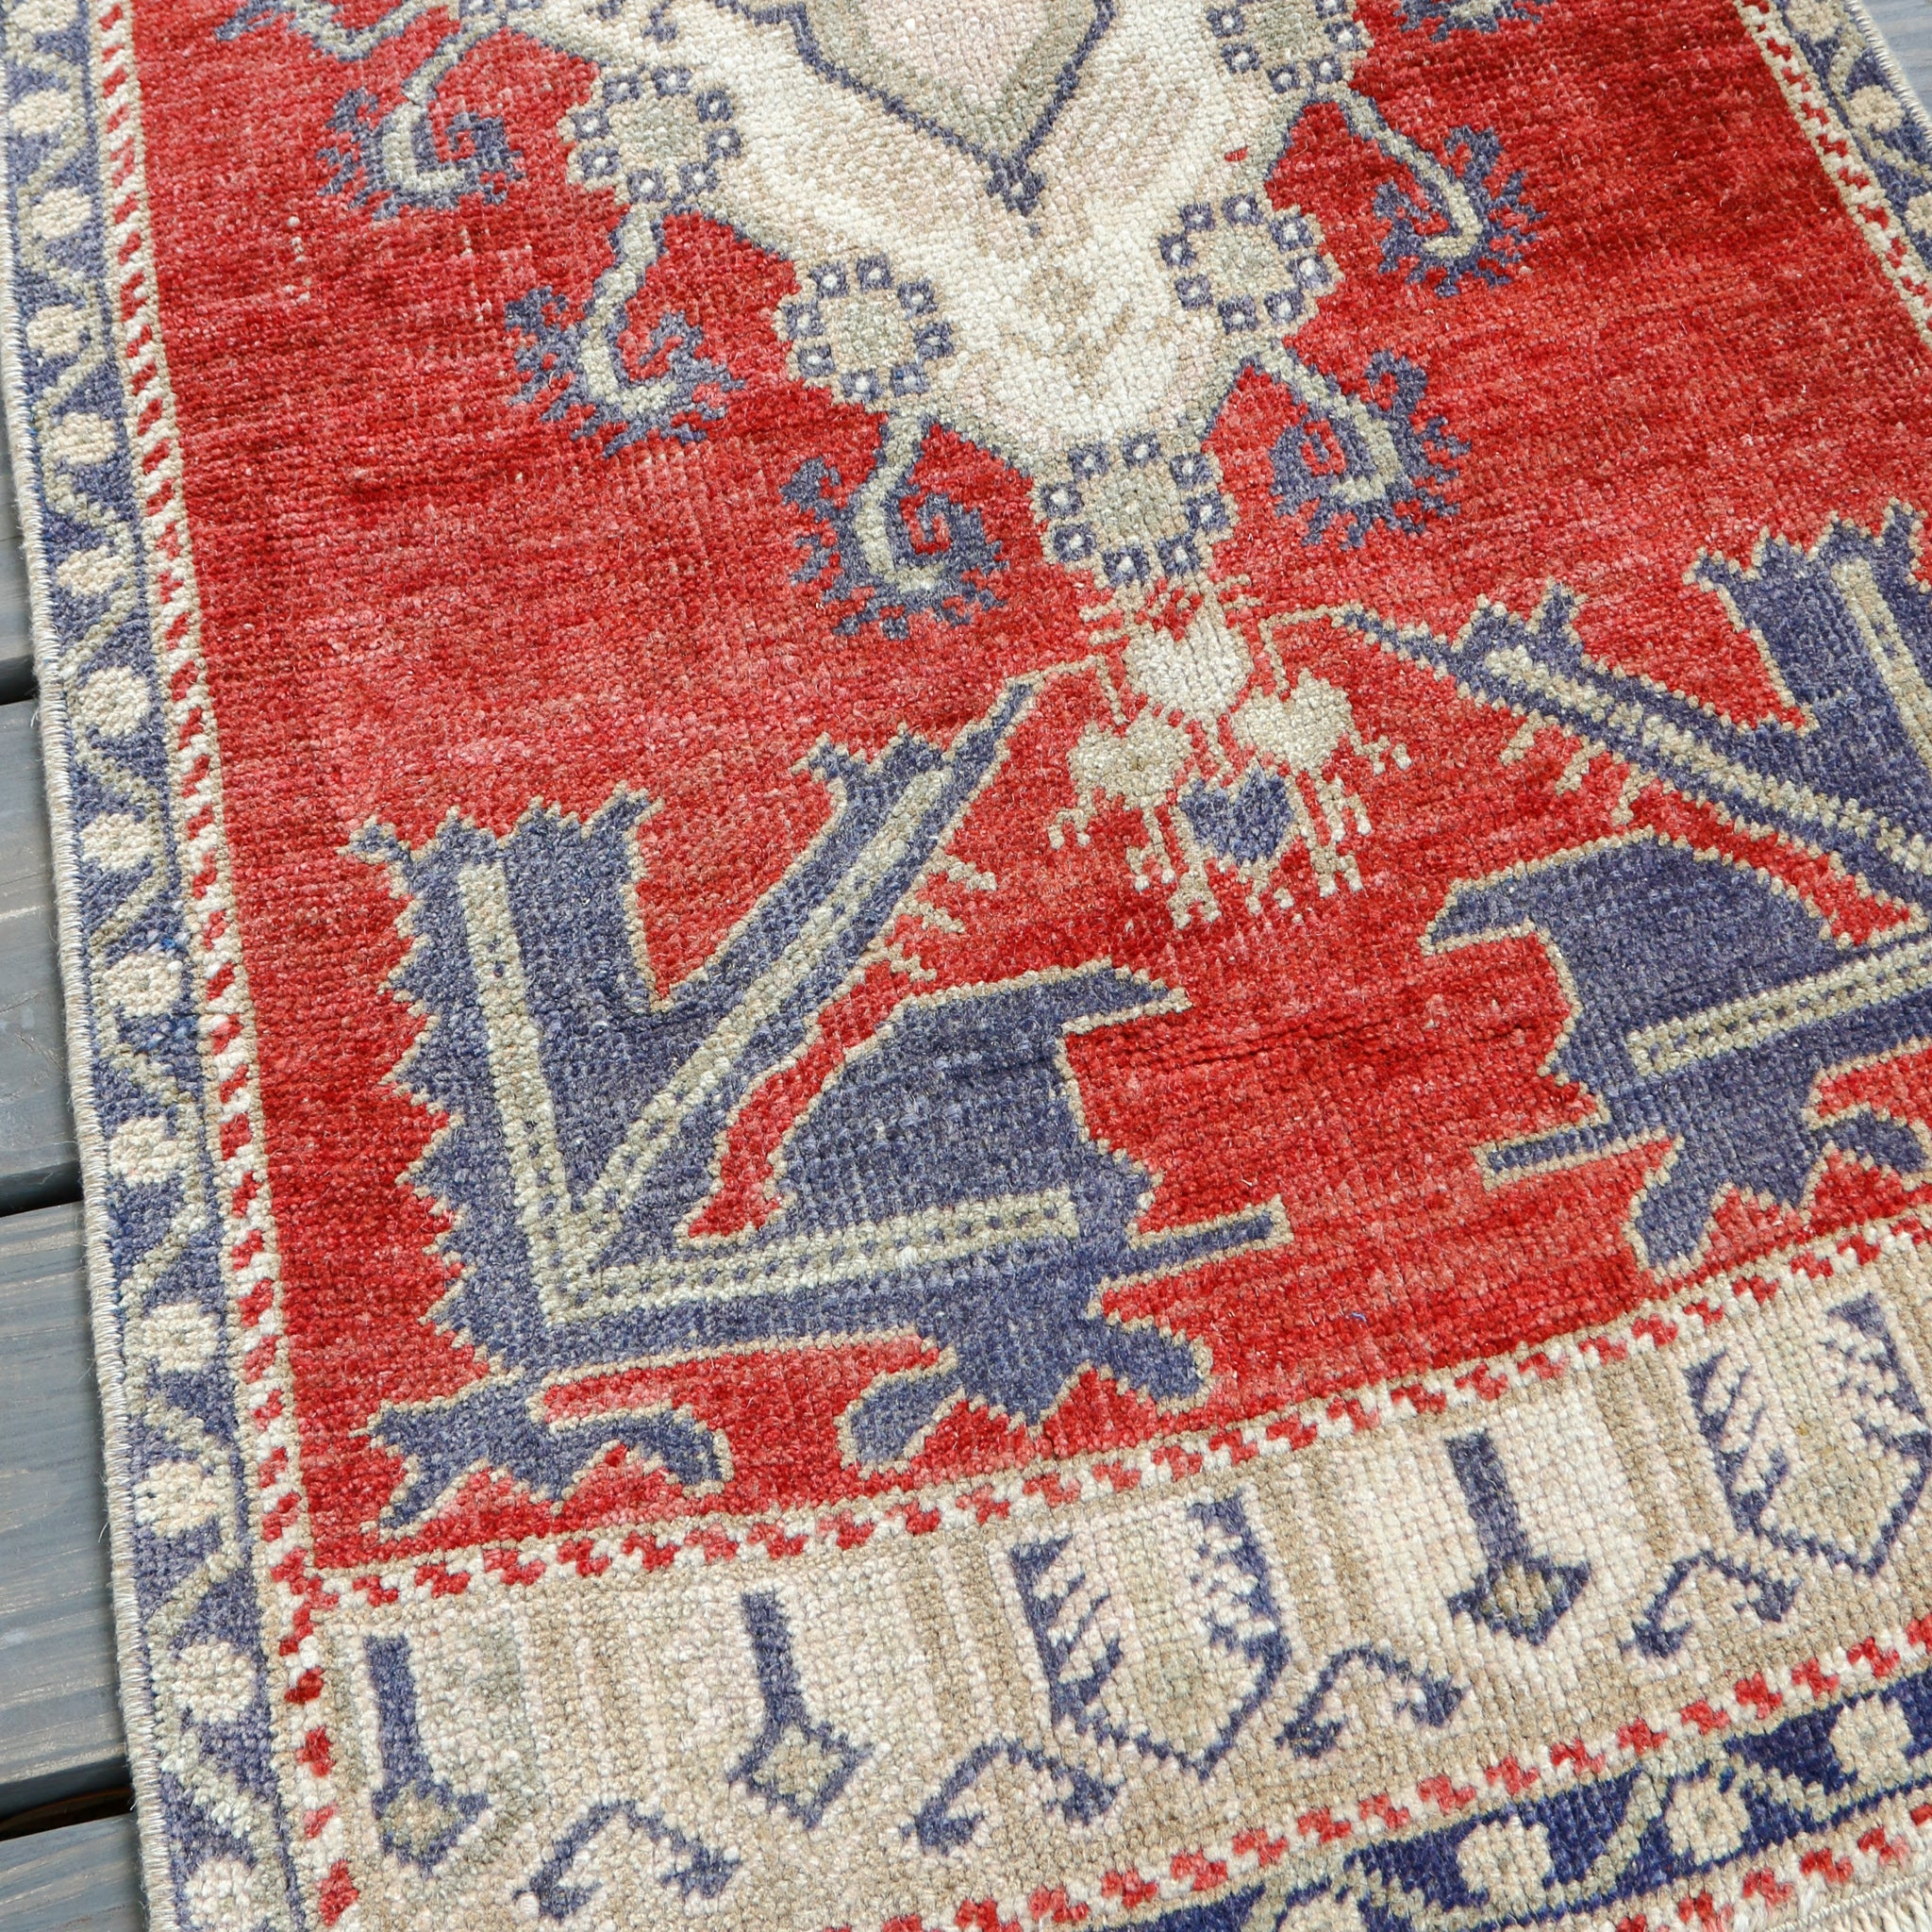 ON HOLD NOT AVAILABLE 1447 Small Handwoven Vintage Rug 1'11x4'3